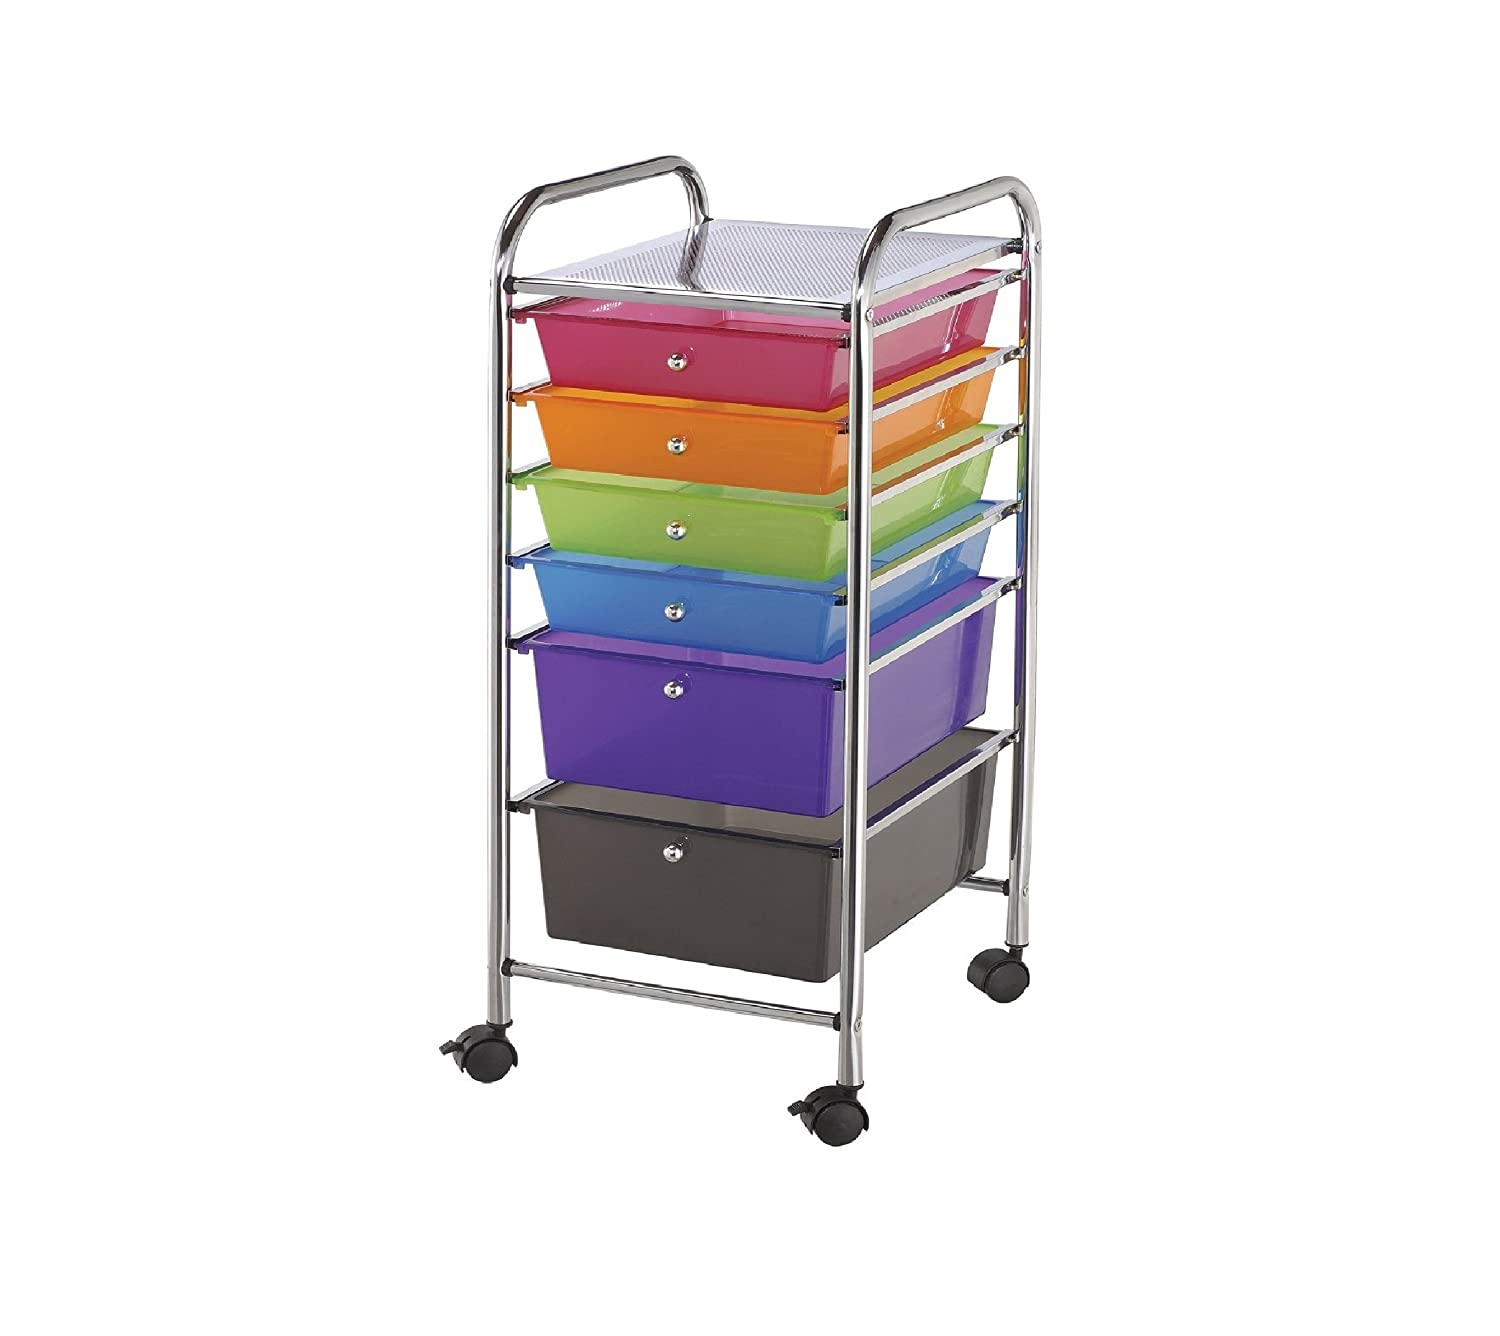 Blue Hills Studio SC6-SM Storage Cart with 6 Drawers 13-Inch by 32-Inch by 15-1/2-Inch, Smoke Notions - In Network